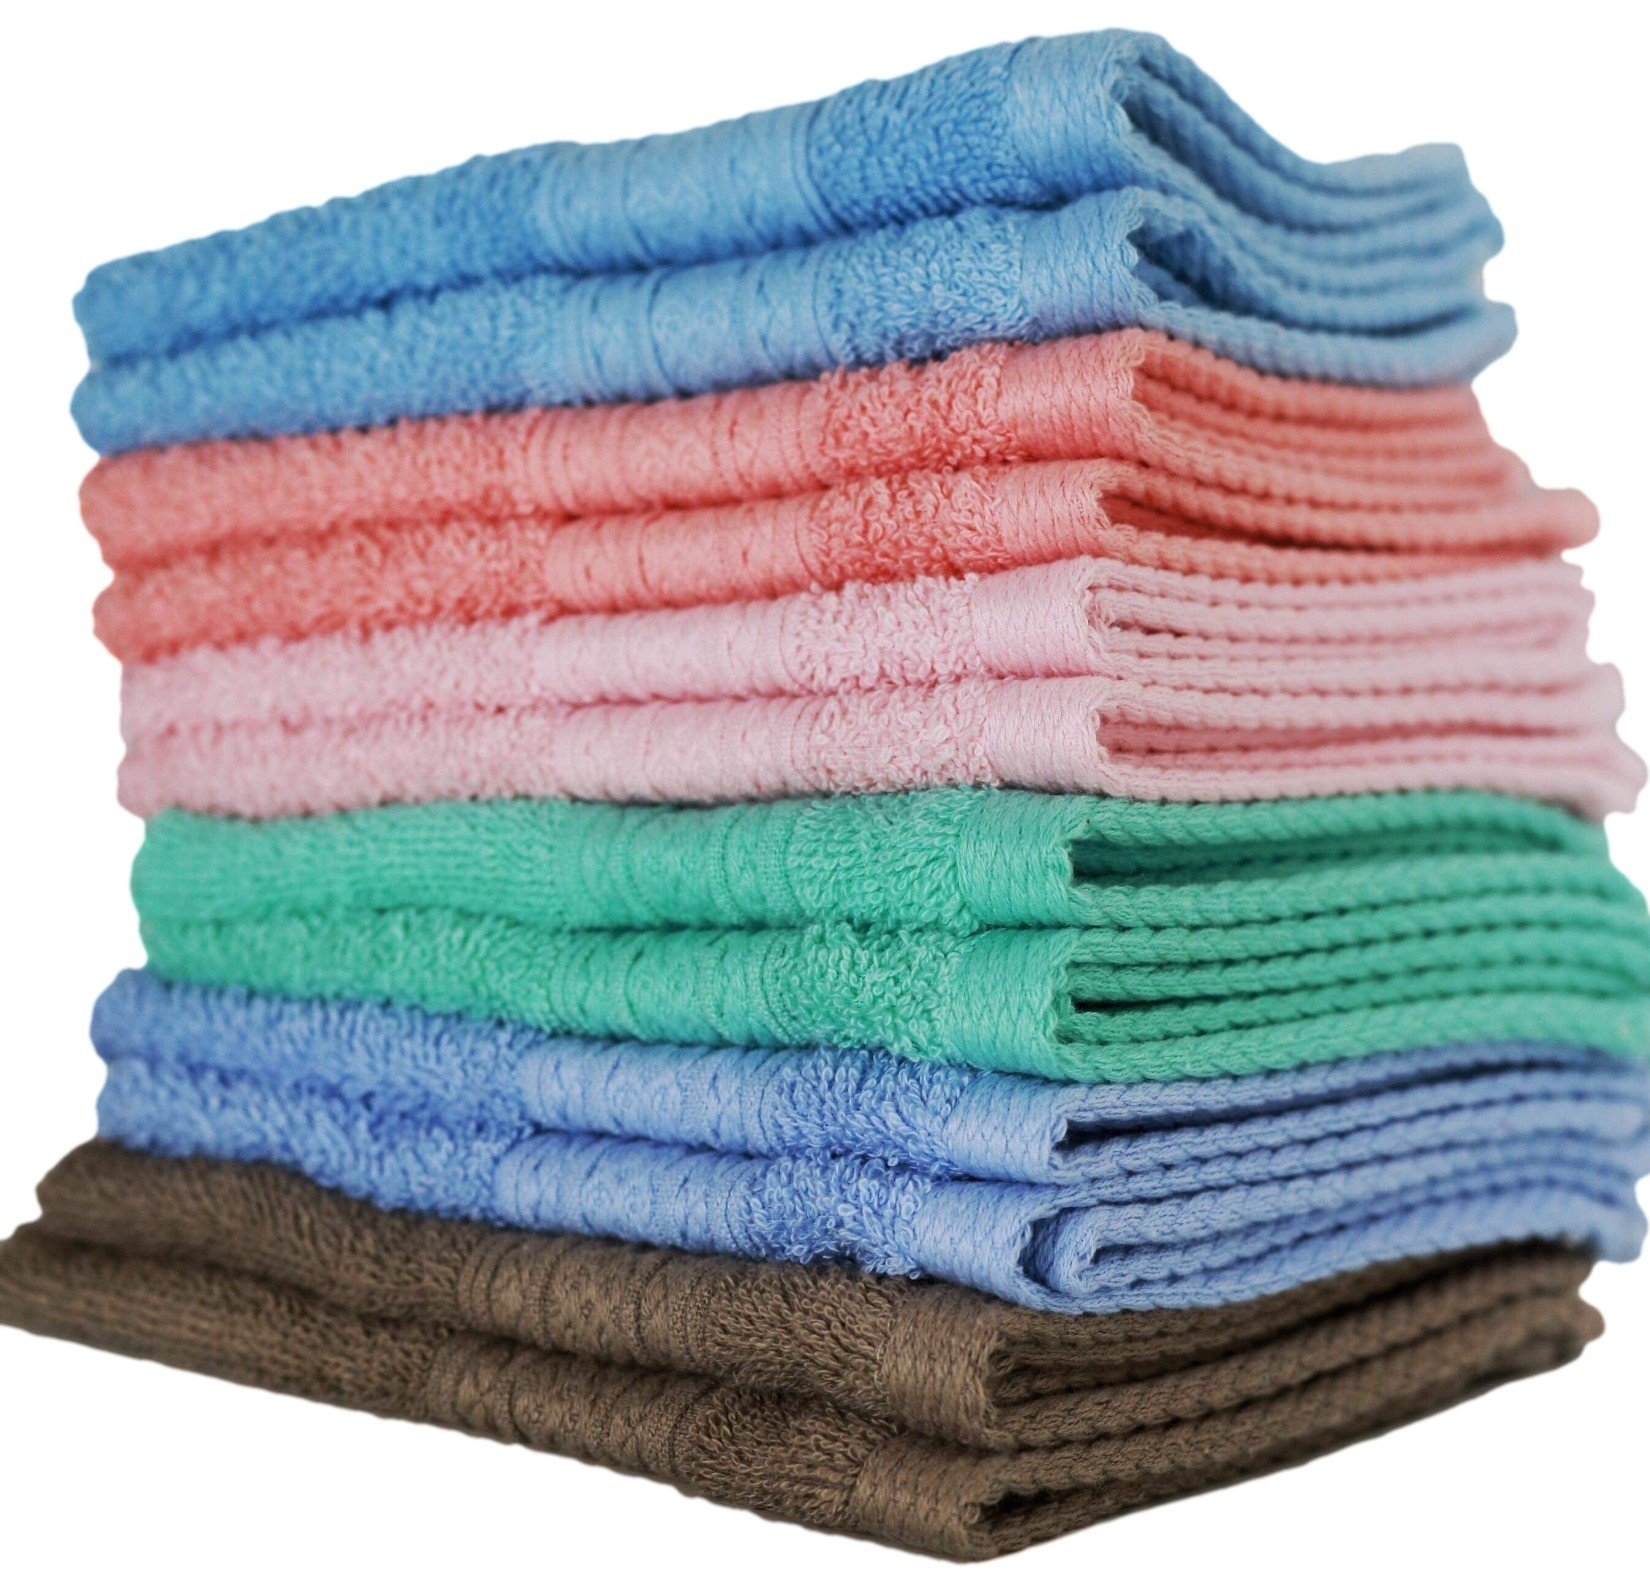 "Luxurious Washcloths – Set of 12 – Size 13"" x 13"" – Thick Loop Pile Washcloth – Absorbent and Soft 100% Ring-Spun Cotton Wash Cloth – Lint Free Face Towel – Wash Cloths Perfect for Bathroom"